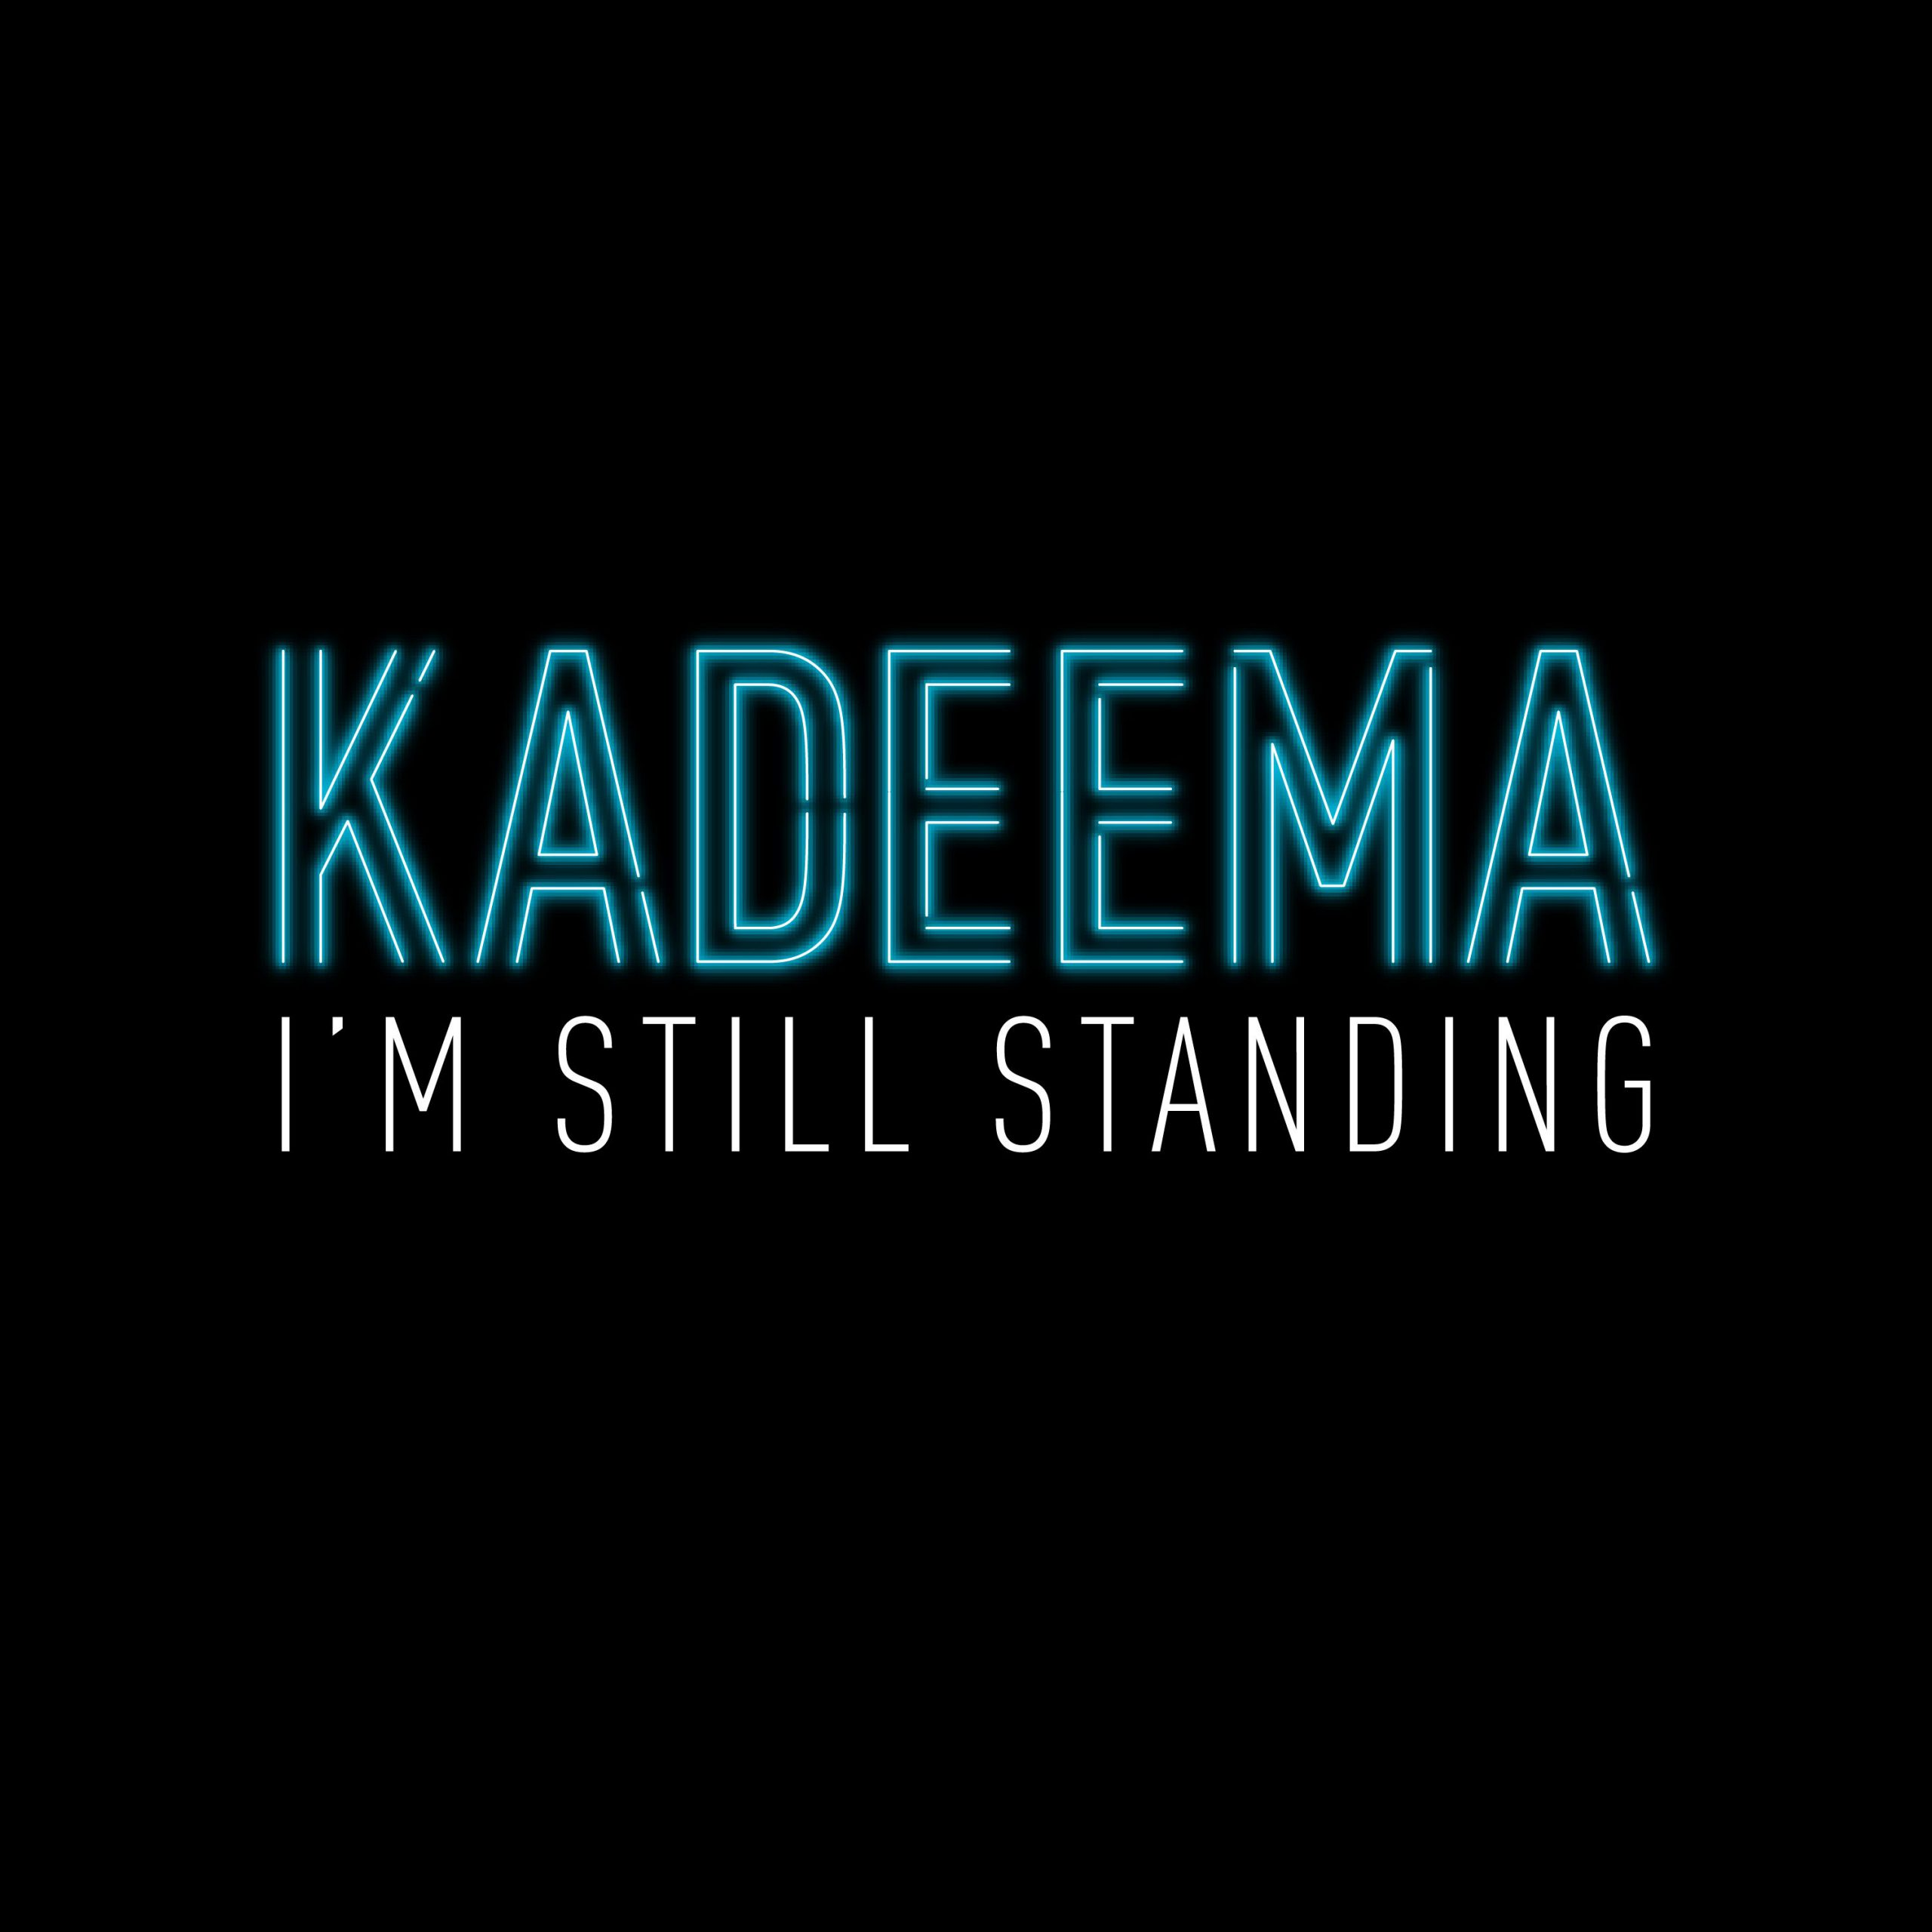 Kadeema featured on IMR